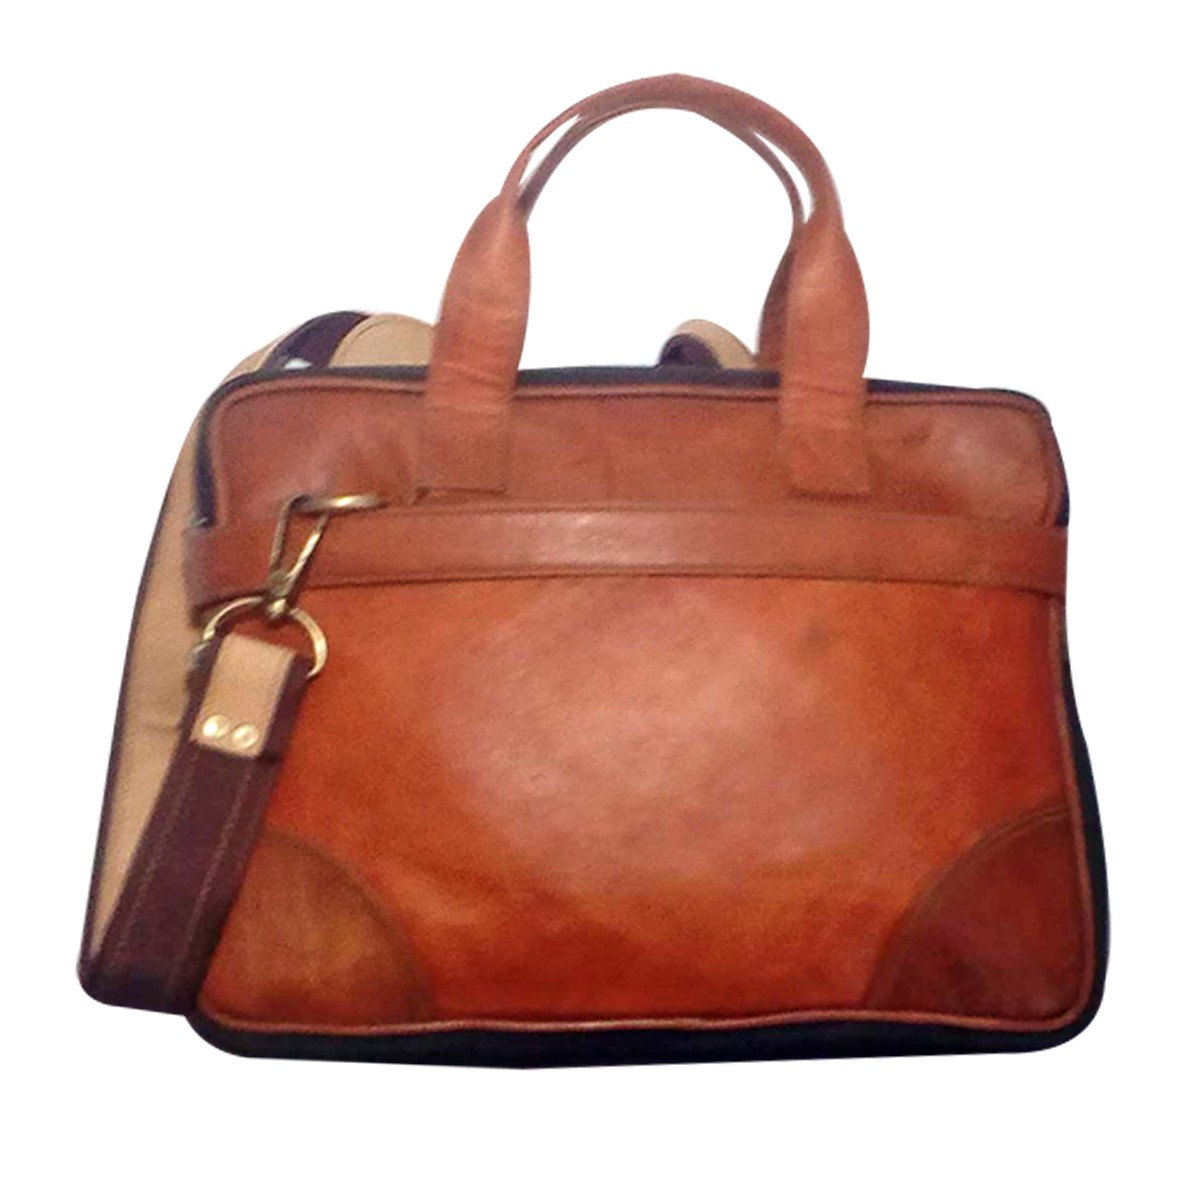 Handmade Brown Genuine Leather Vintage Messenger Bag by Rural Artisans